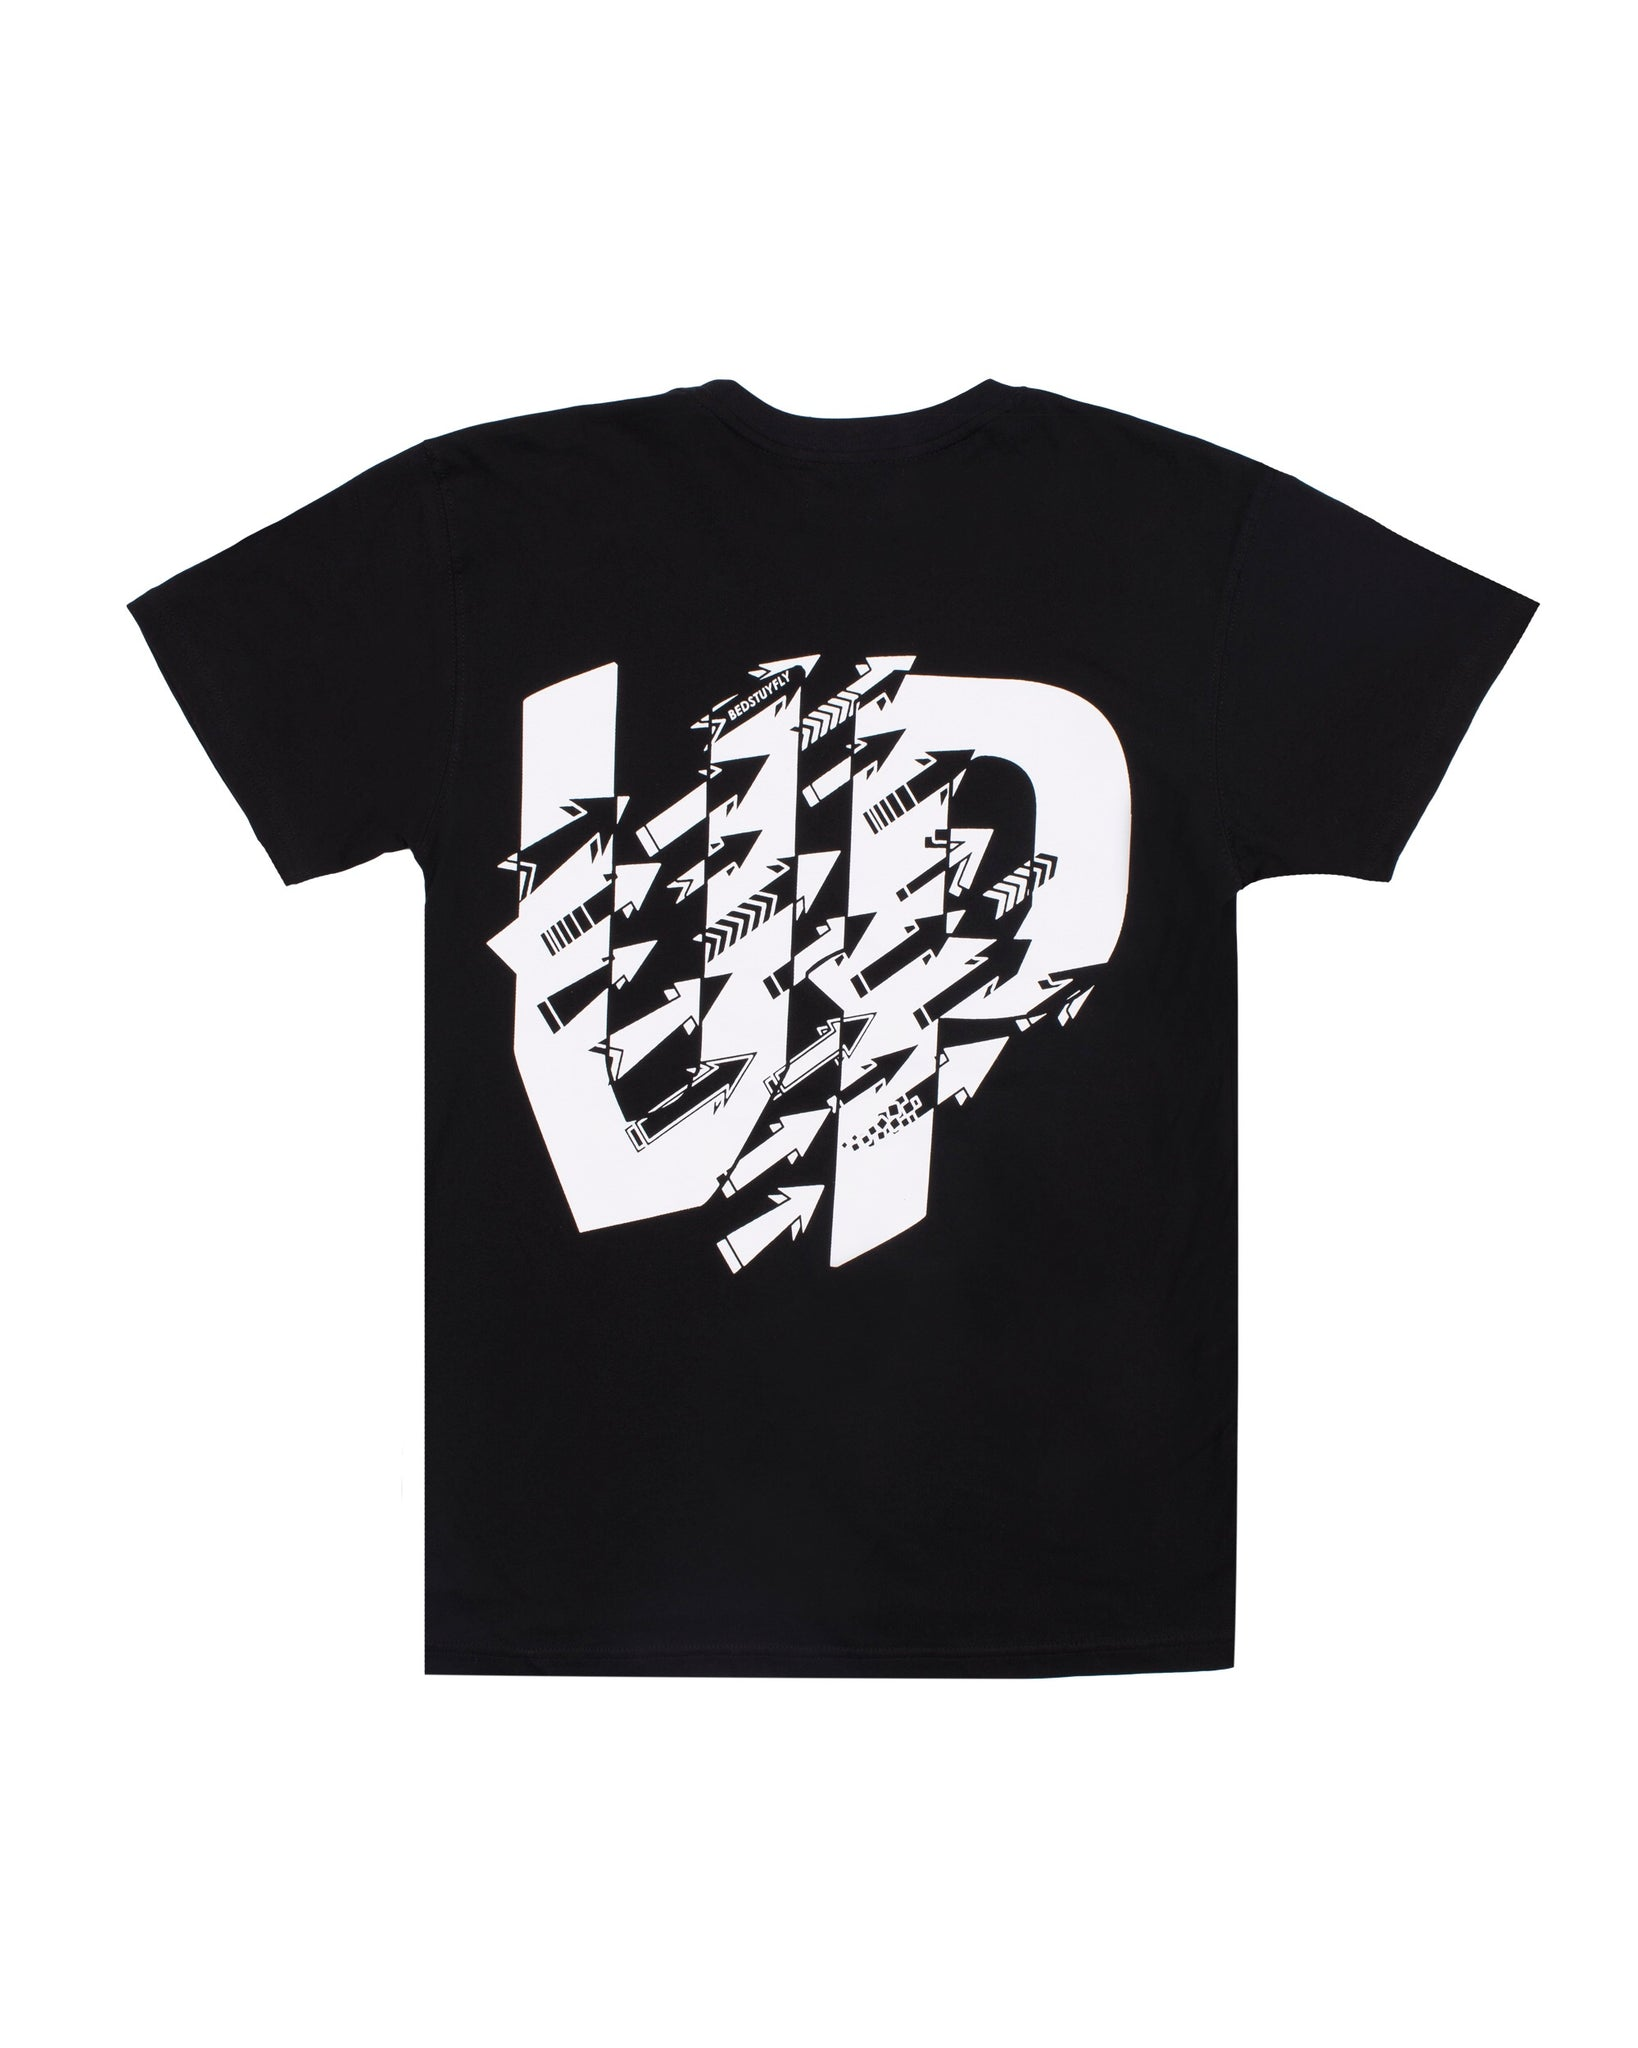 UP T-Shirt  (Blk)